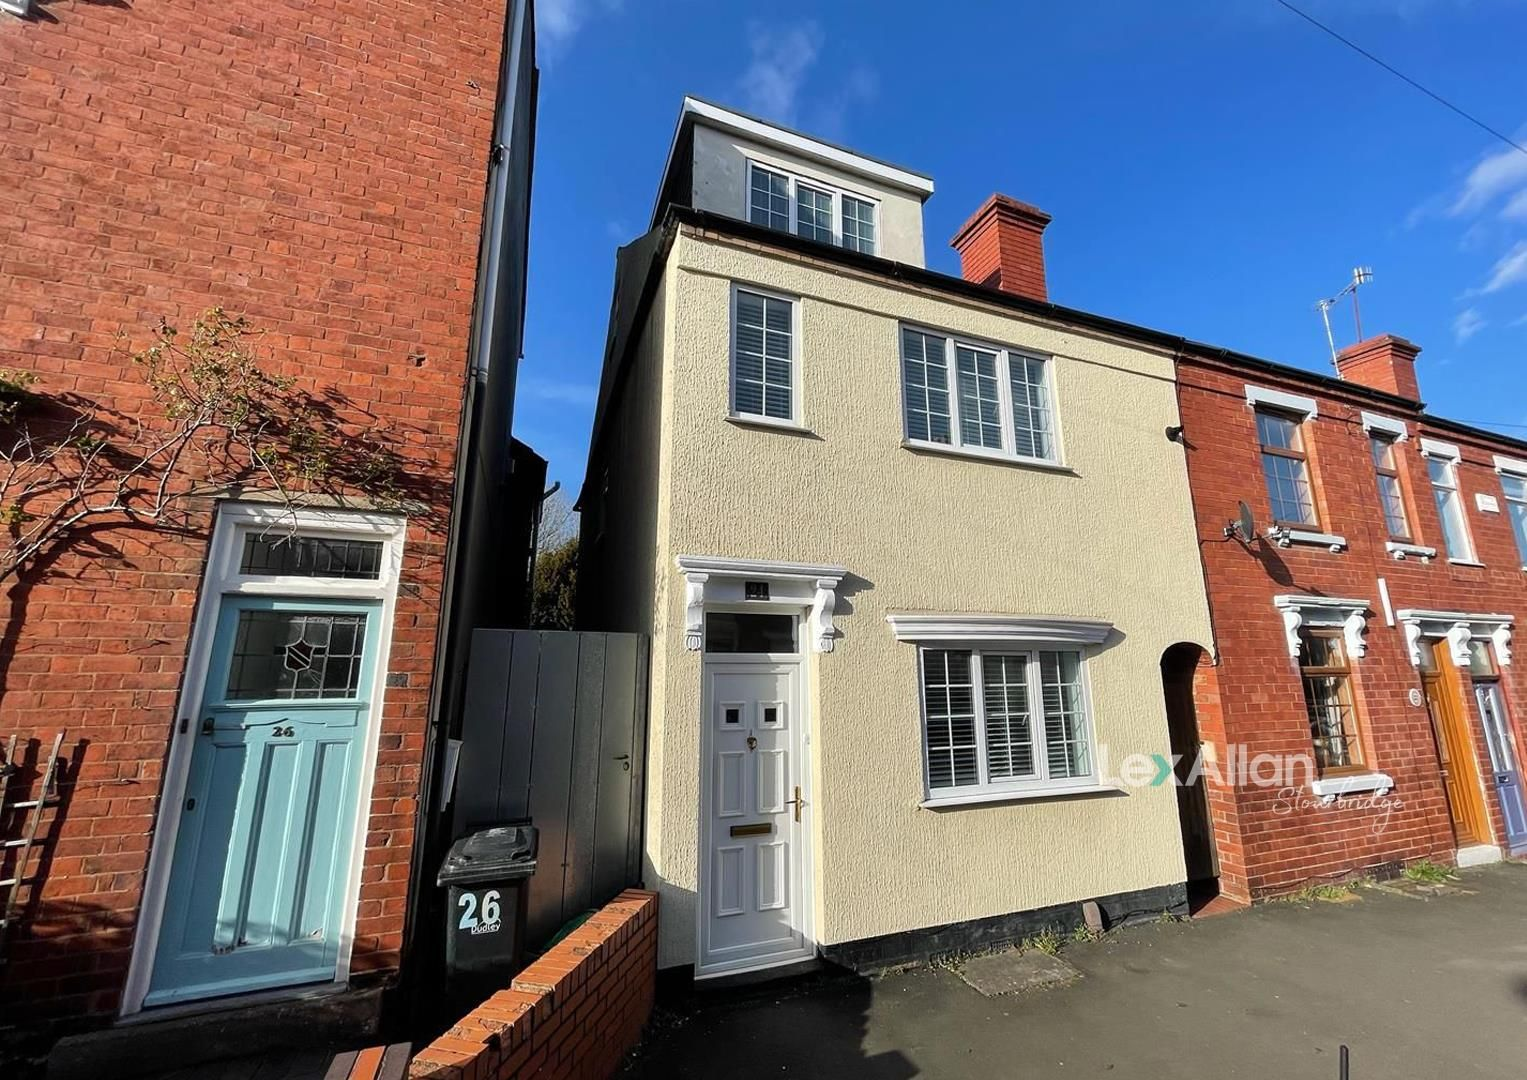 4 bed end-of-terrace for sale in Old Quarter, DY8